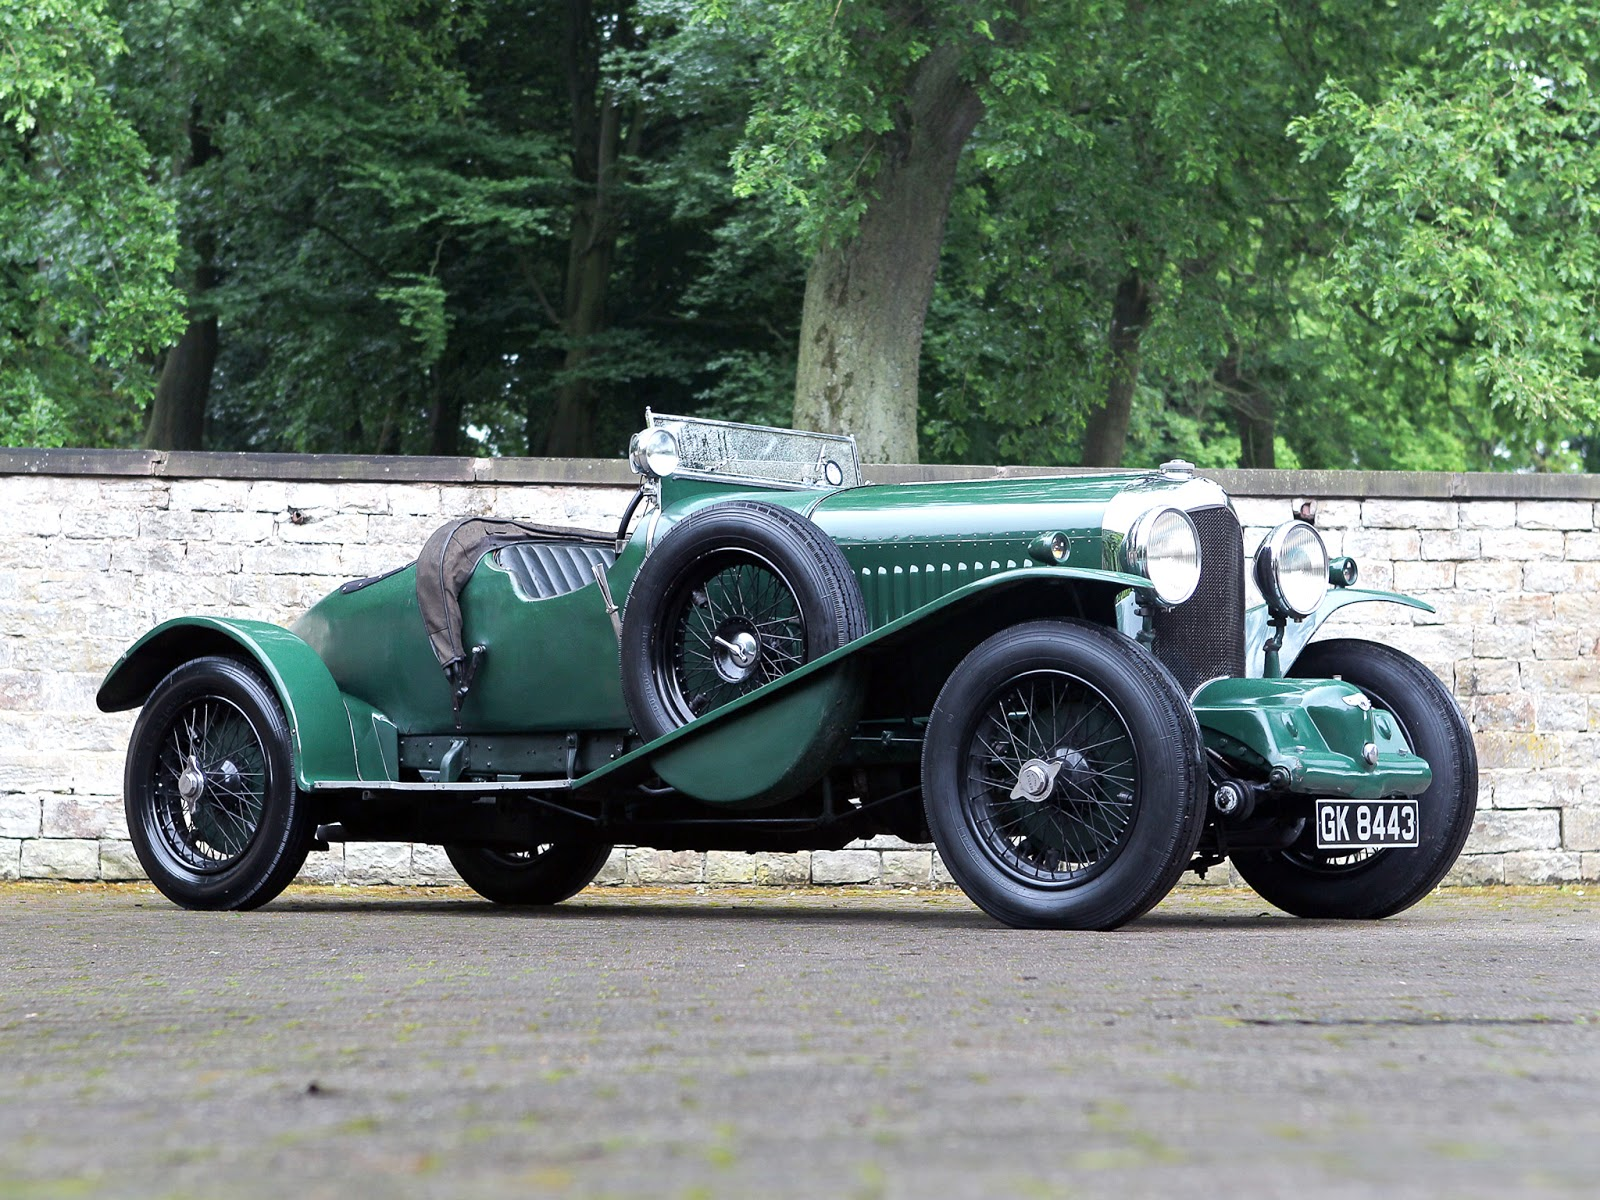 Bentley 4 1/2 Litre Supercharged Blower